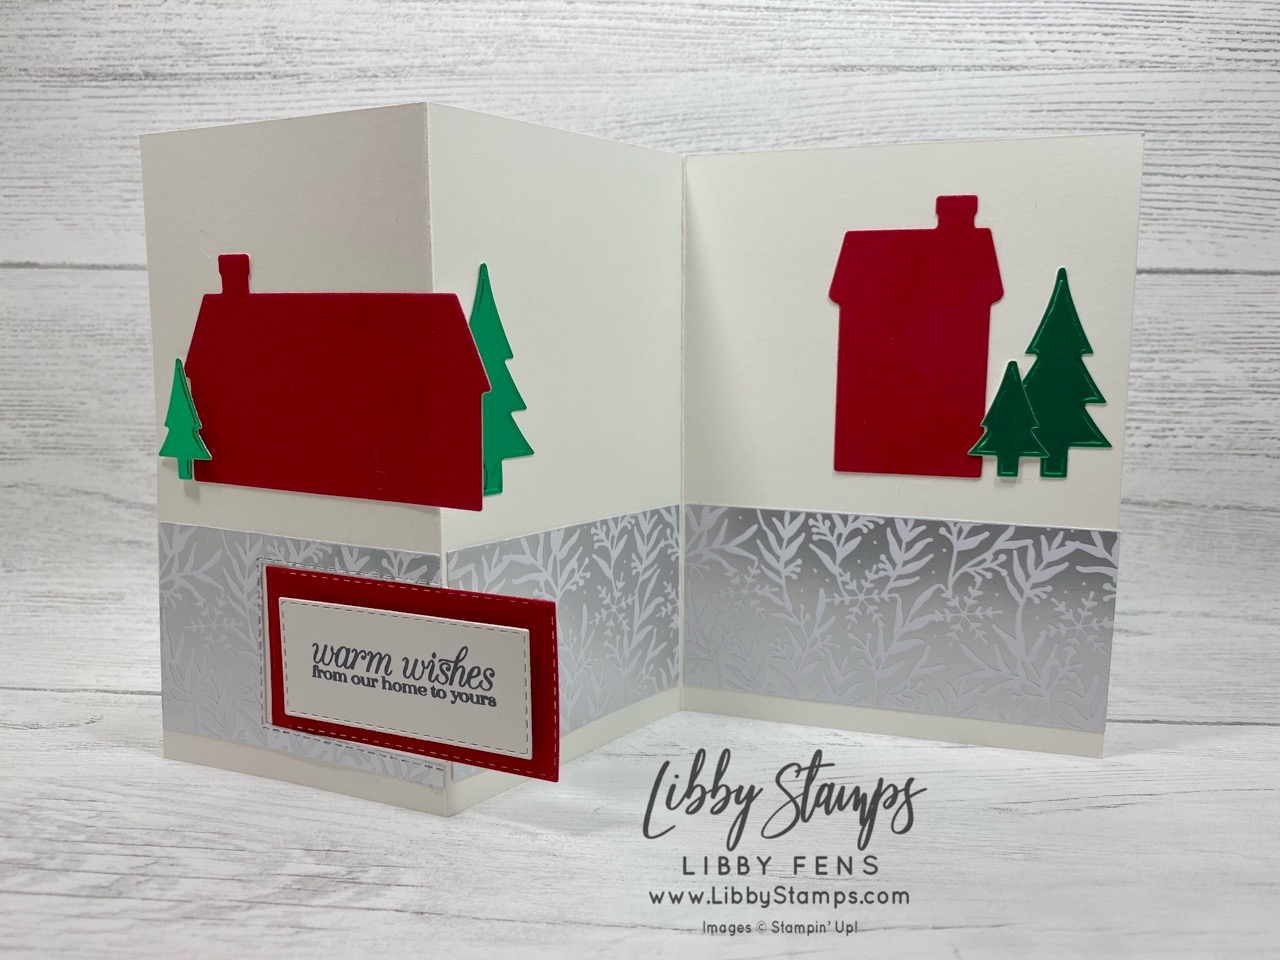 libbystamps, Stampin' Up!. Poinsettia Petals, Home Together Dies, Rectangle Stitched Dies, Red Velvet, Red & Green Foil Sheets, Feels Like Frost DSP, CCMC, Create with Connie and Mary